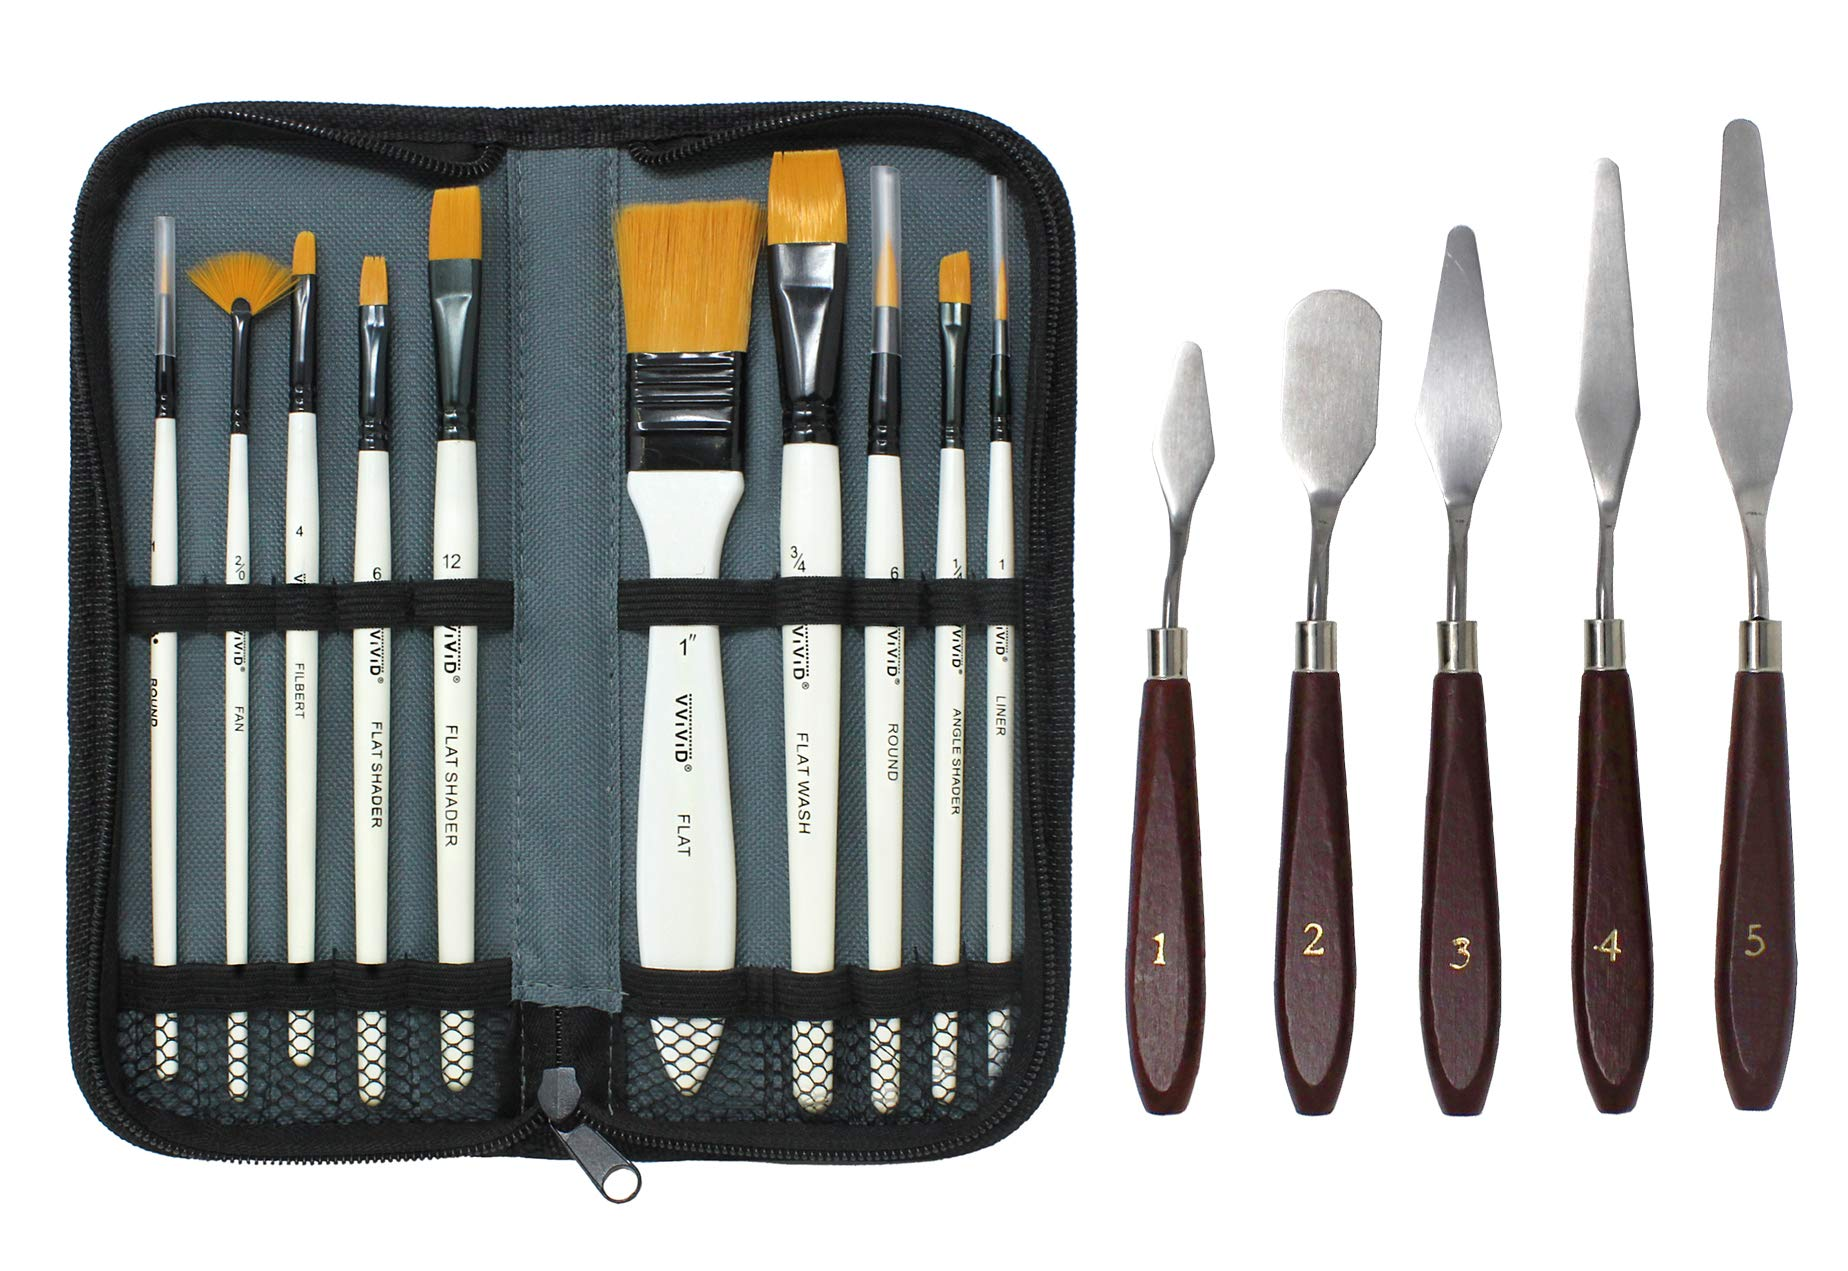 Workhorse Painting Tools Set (10 Paint Brush Set w/Palette Knife) by VViViD